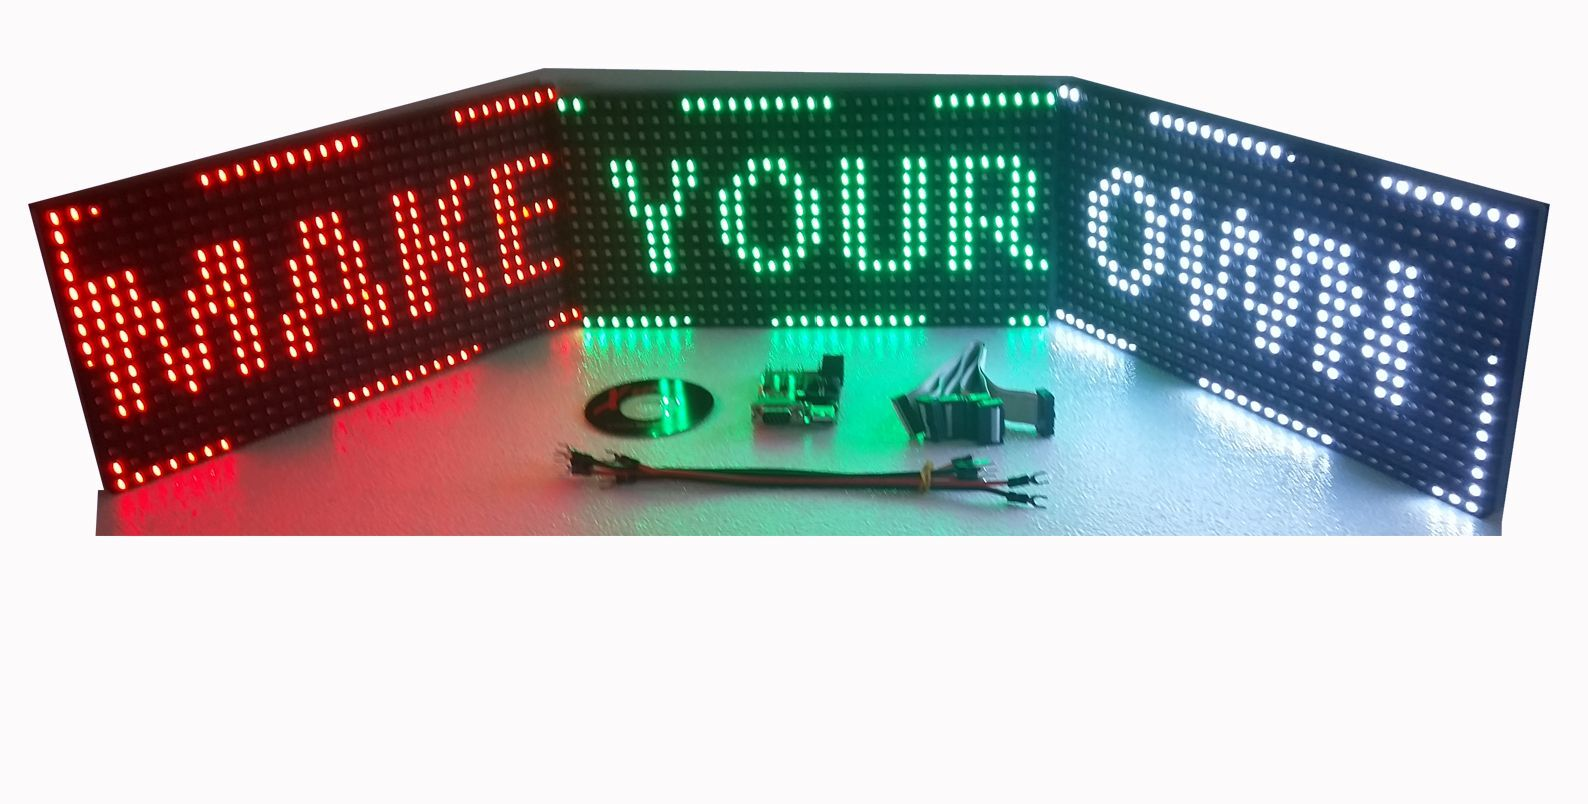 led sign diy kit 2 p10 led panels experimenting and learning led led sign business signs. Black Bedroom Furniture Sets. Home Design Ideas